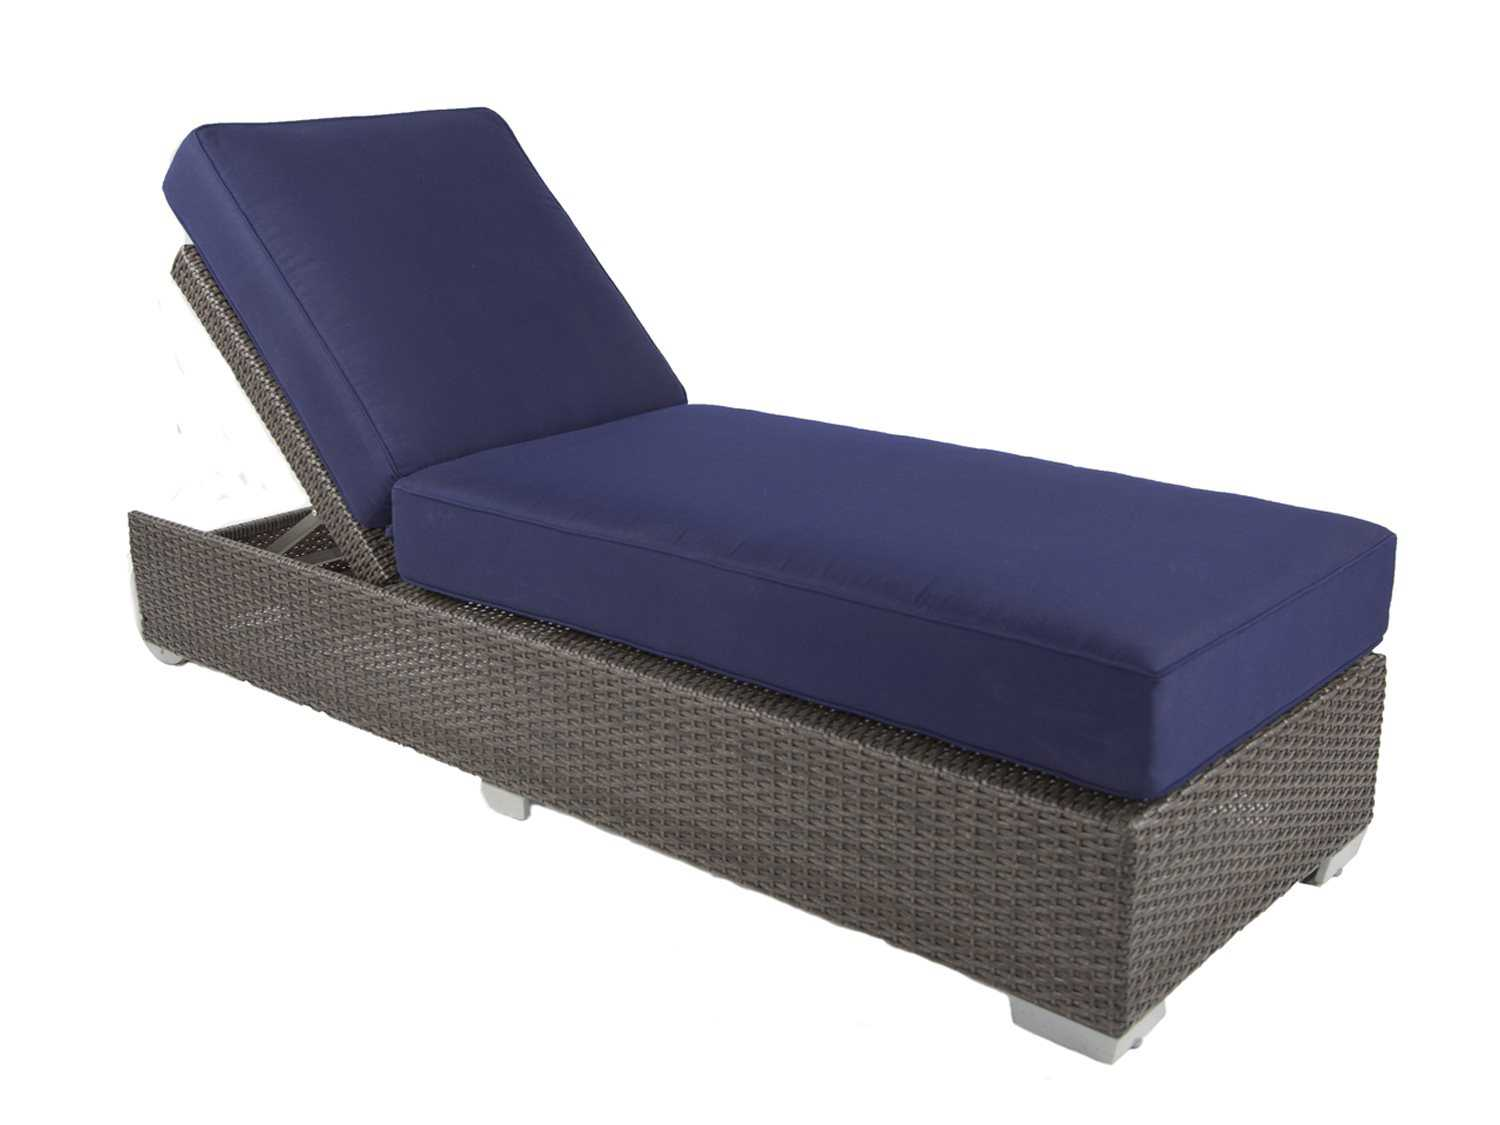 Patio heaven signature wicker single chaise pasbc1 for Chaise longue cushions